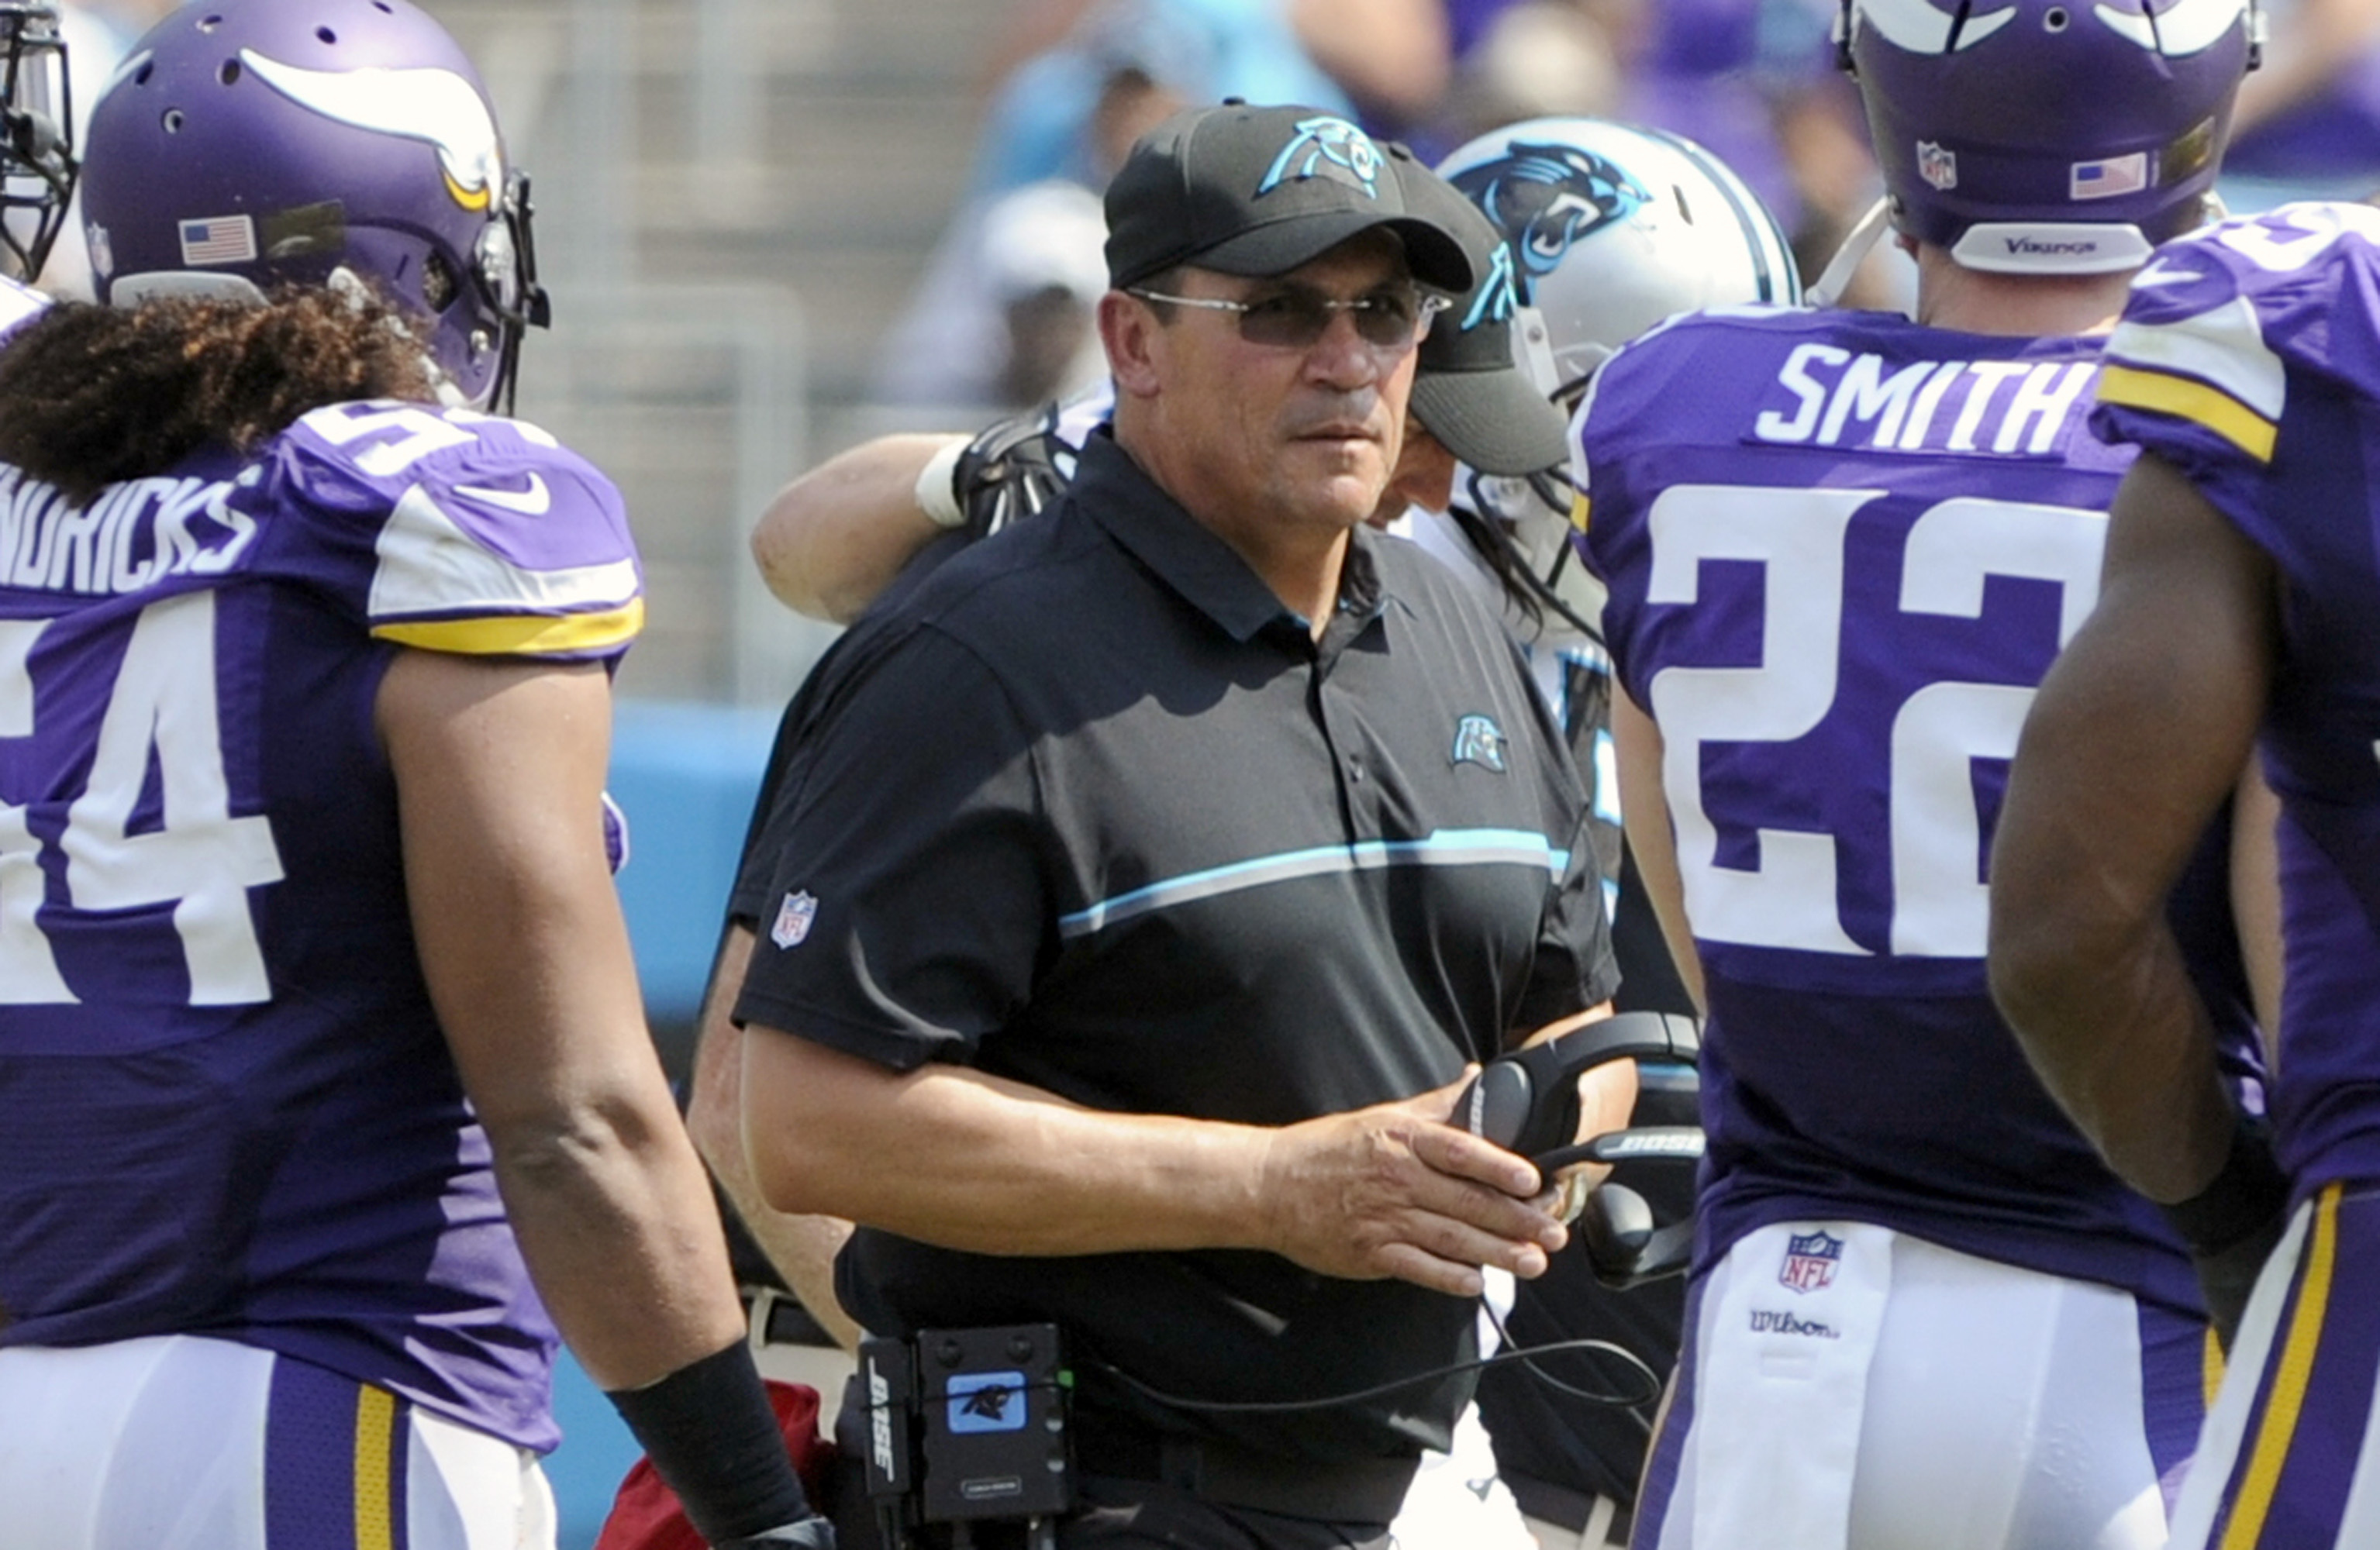 FILE - In this Sept. 25, 2016, file photo, Carolina Panthers head coach Ron Rivera, center, walks through Minnesota Vikings players in the first half of an NFL football game in Charlotte, N.C. Rivera said Monday that two things became apparent to him afte